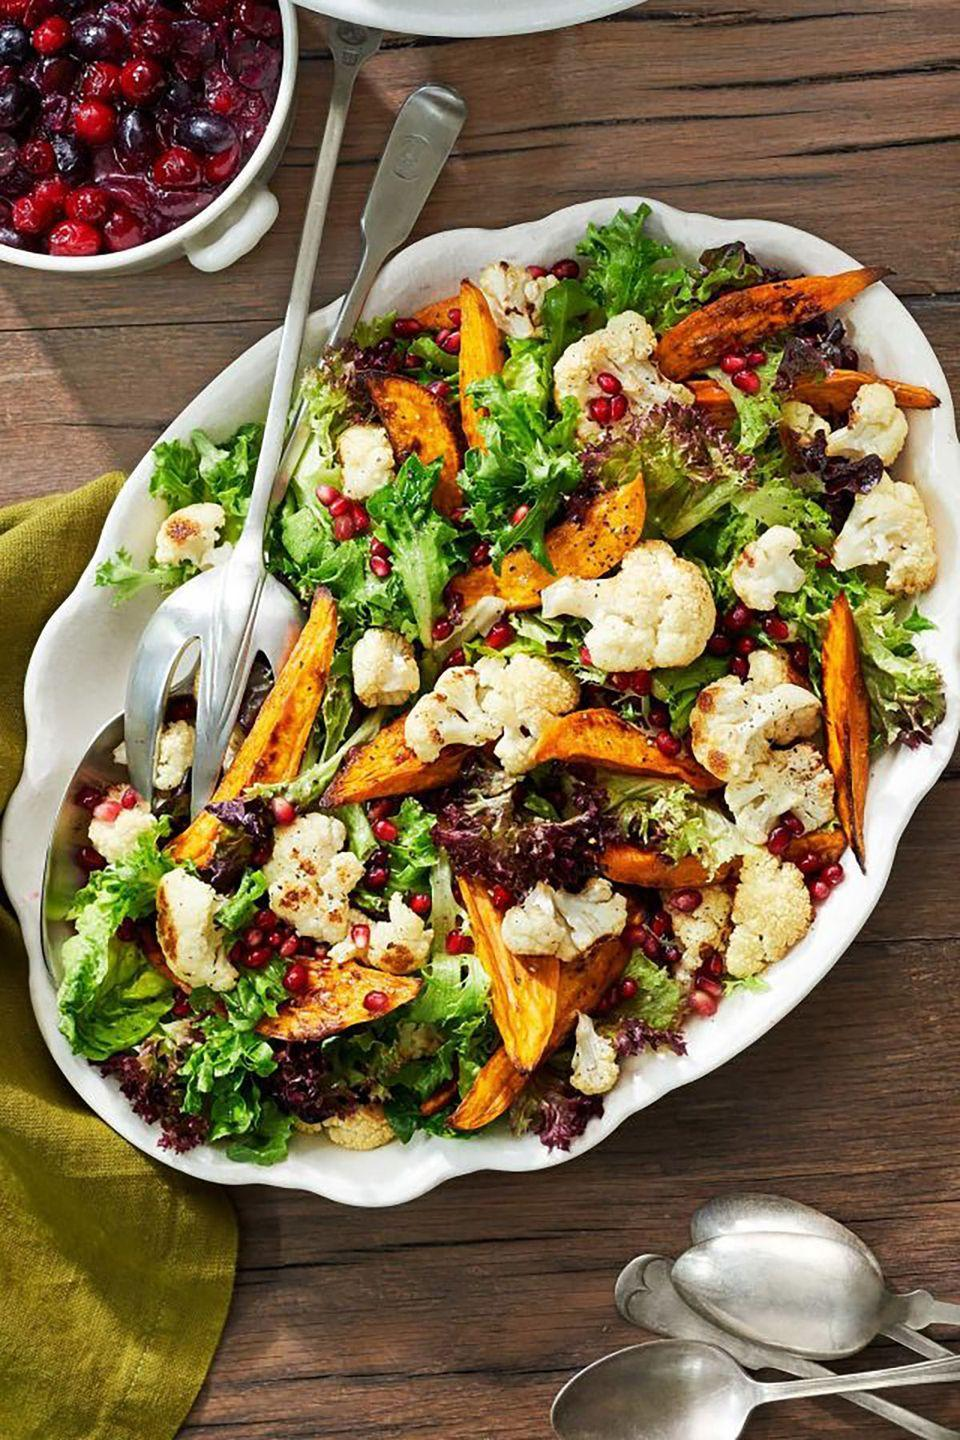 "<p>Take your side salad to the next level by adding warm, roasted veggies.</p><p><strong><a href=""https://www.countryliving.com/food-drinks/recipes/a40029/sweet-potato-and-cauliflower-salad-recipe/"" rel=""nofollow noopener"" target=""_blank"" data-ylk=""slk:Get the recipe"" class=""link rapid-noclick-resp"">Get the recipe</a>.</strong></p>"